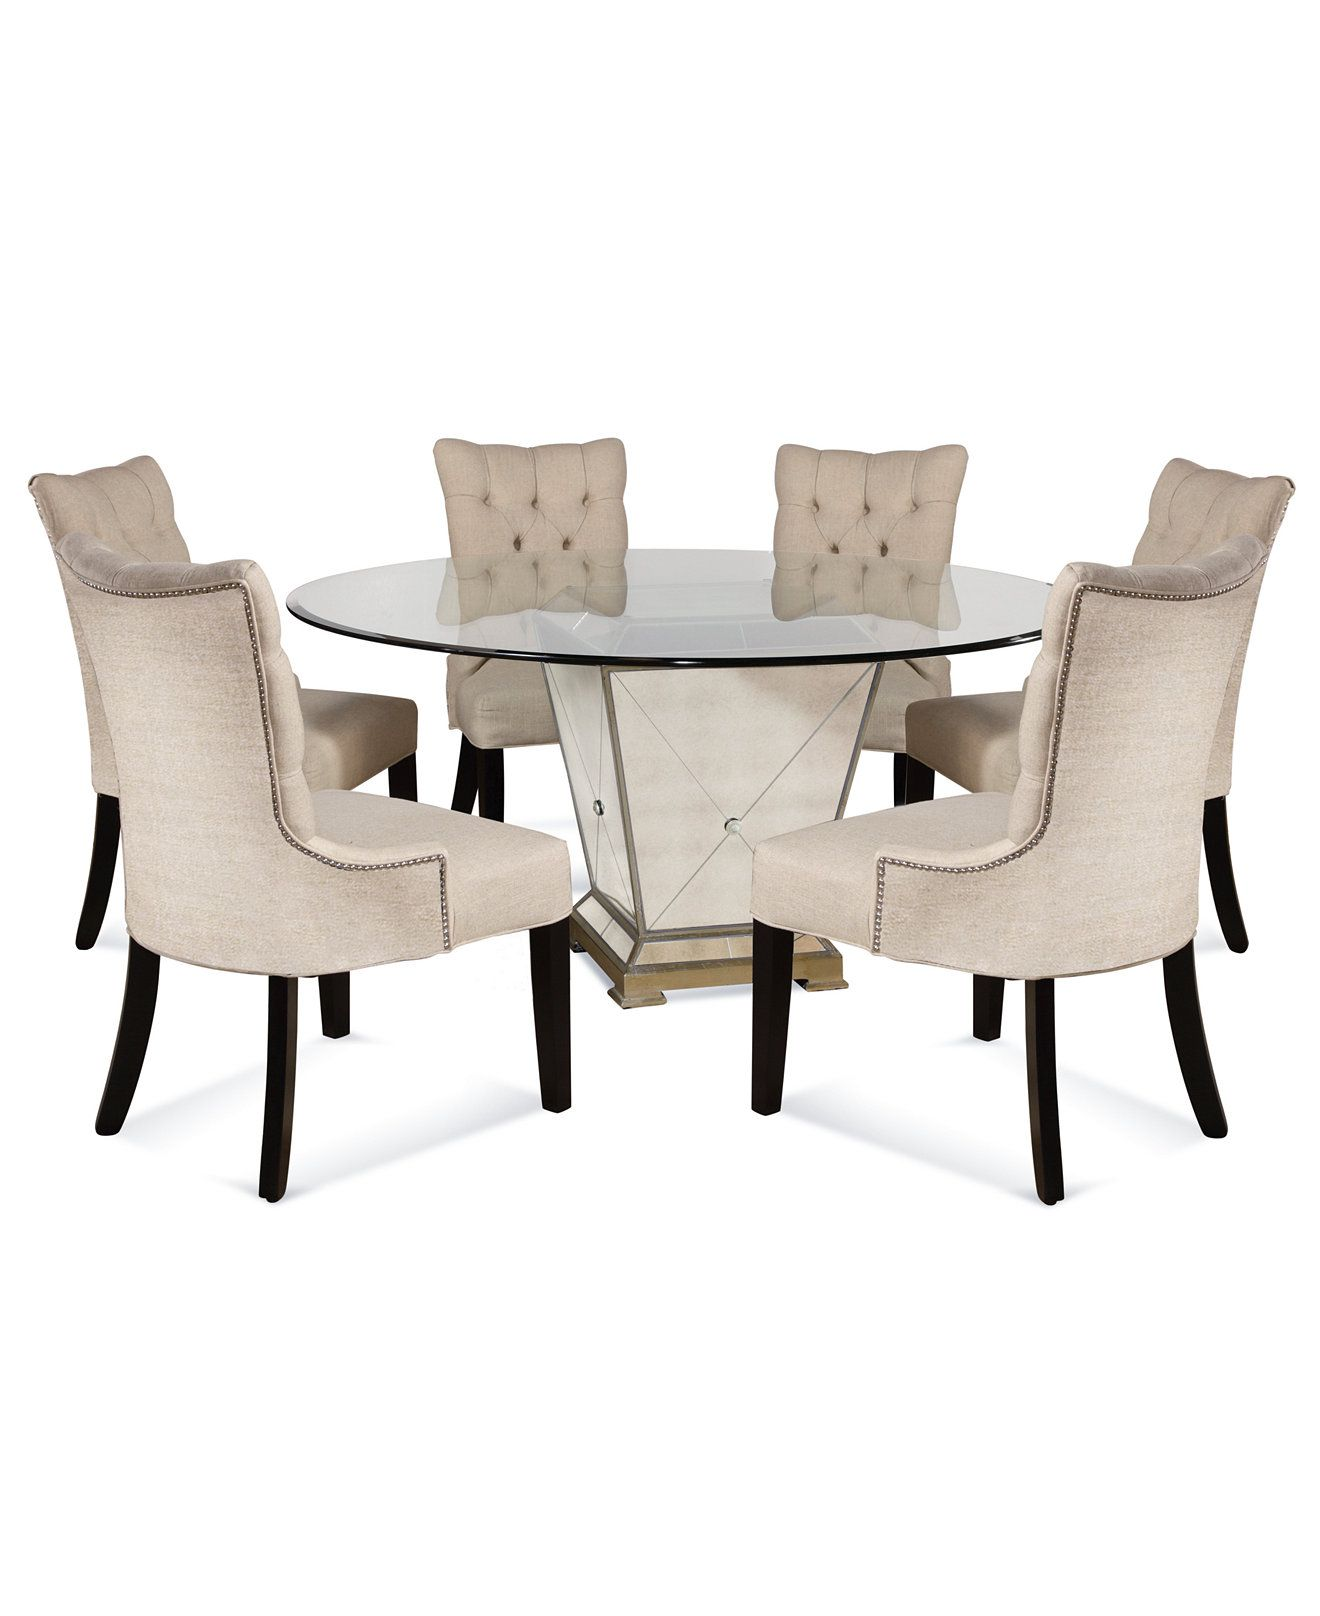 dining table set 6 chairs diy folding chair marais room furniture 7 piece 60 quot mirrored